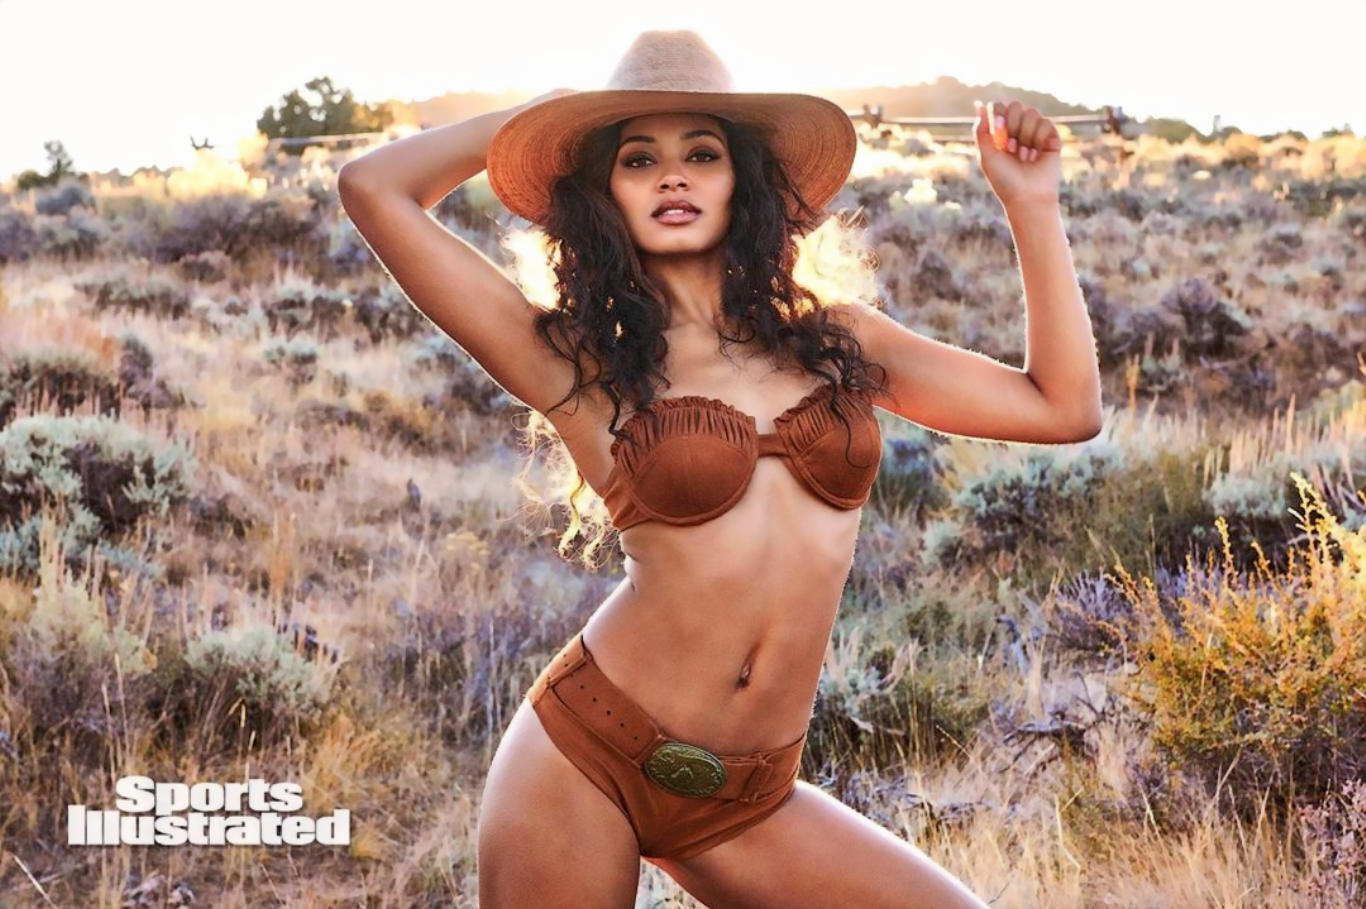 Danielle Herrington Hot Look HD Wallpaper